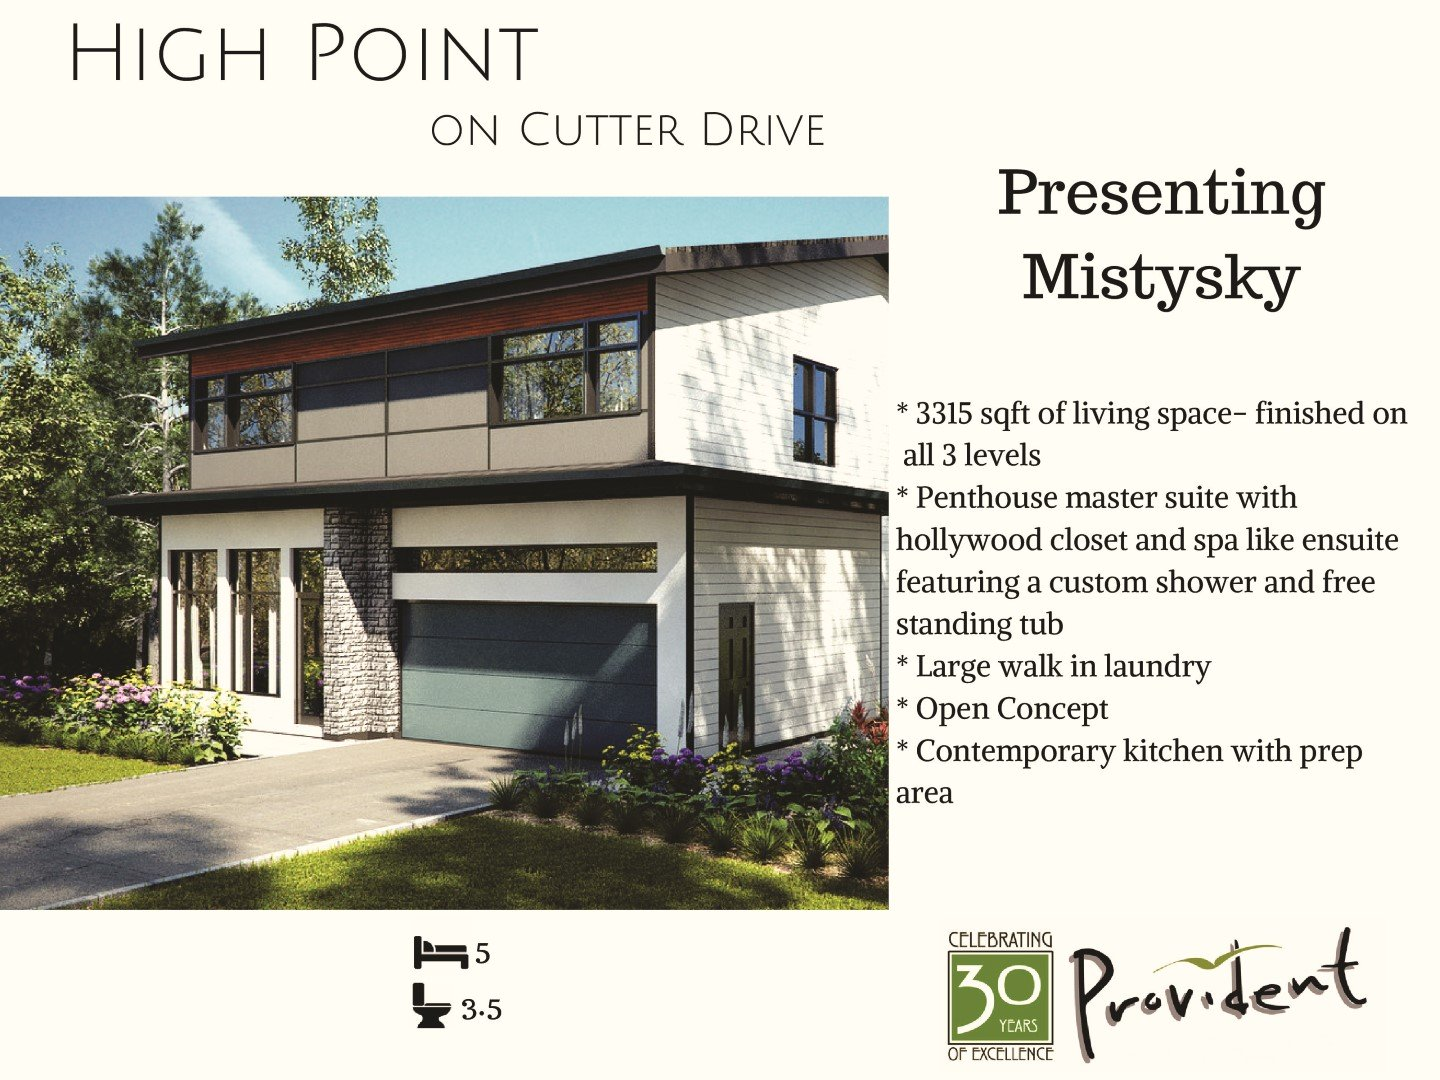 High Point design 1